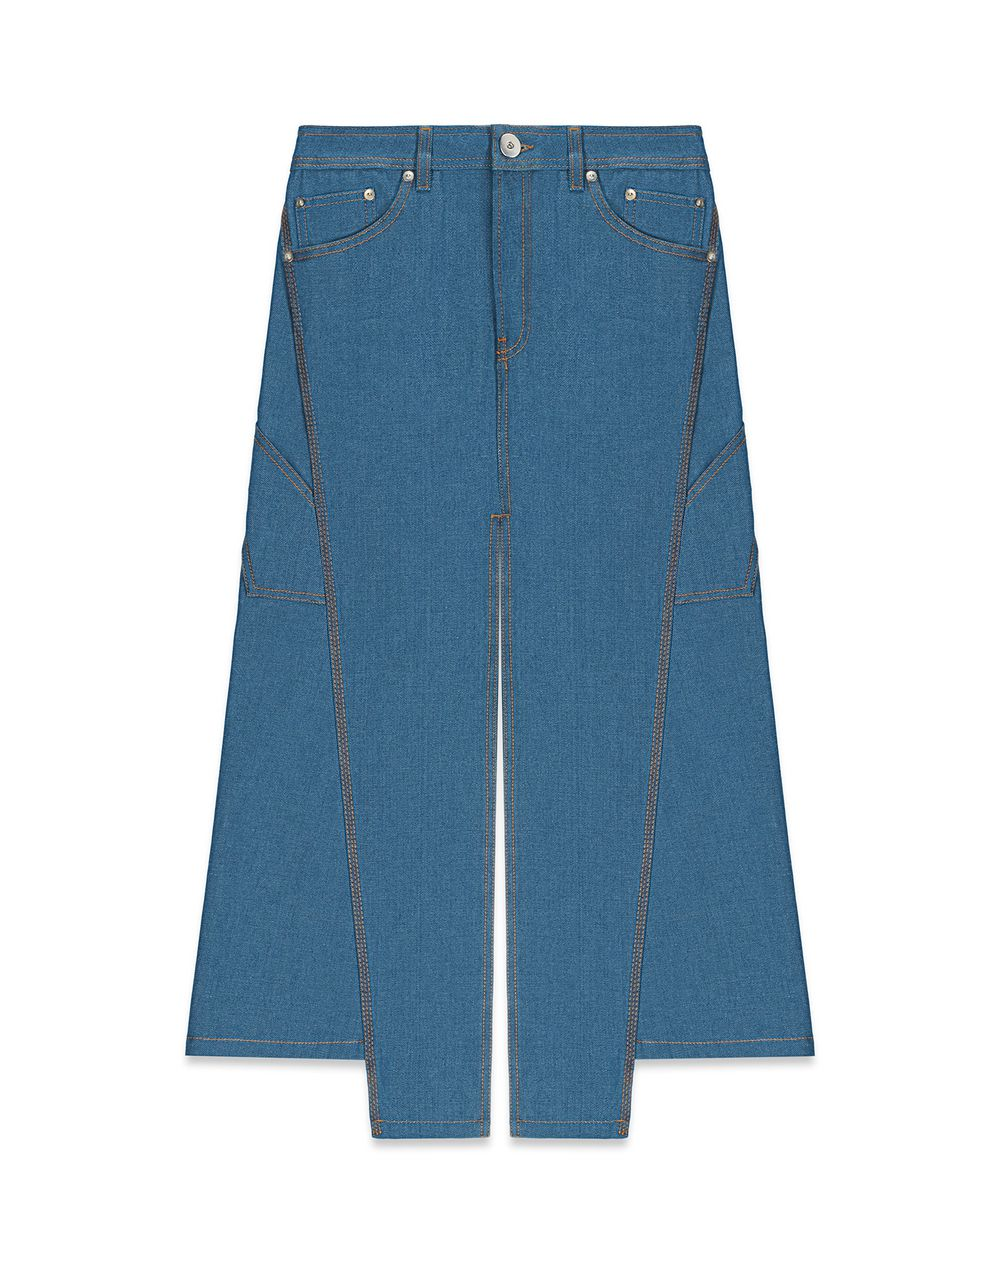 DENIM SLIT SKIRT - Lanvin